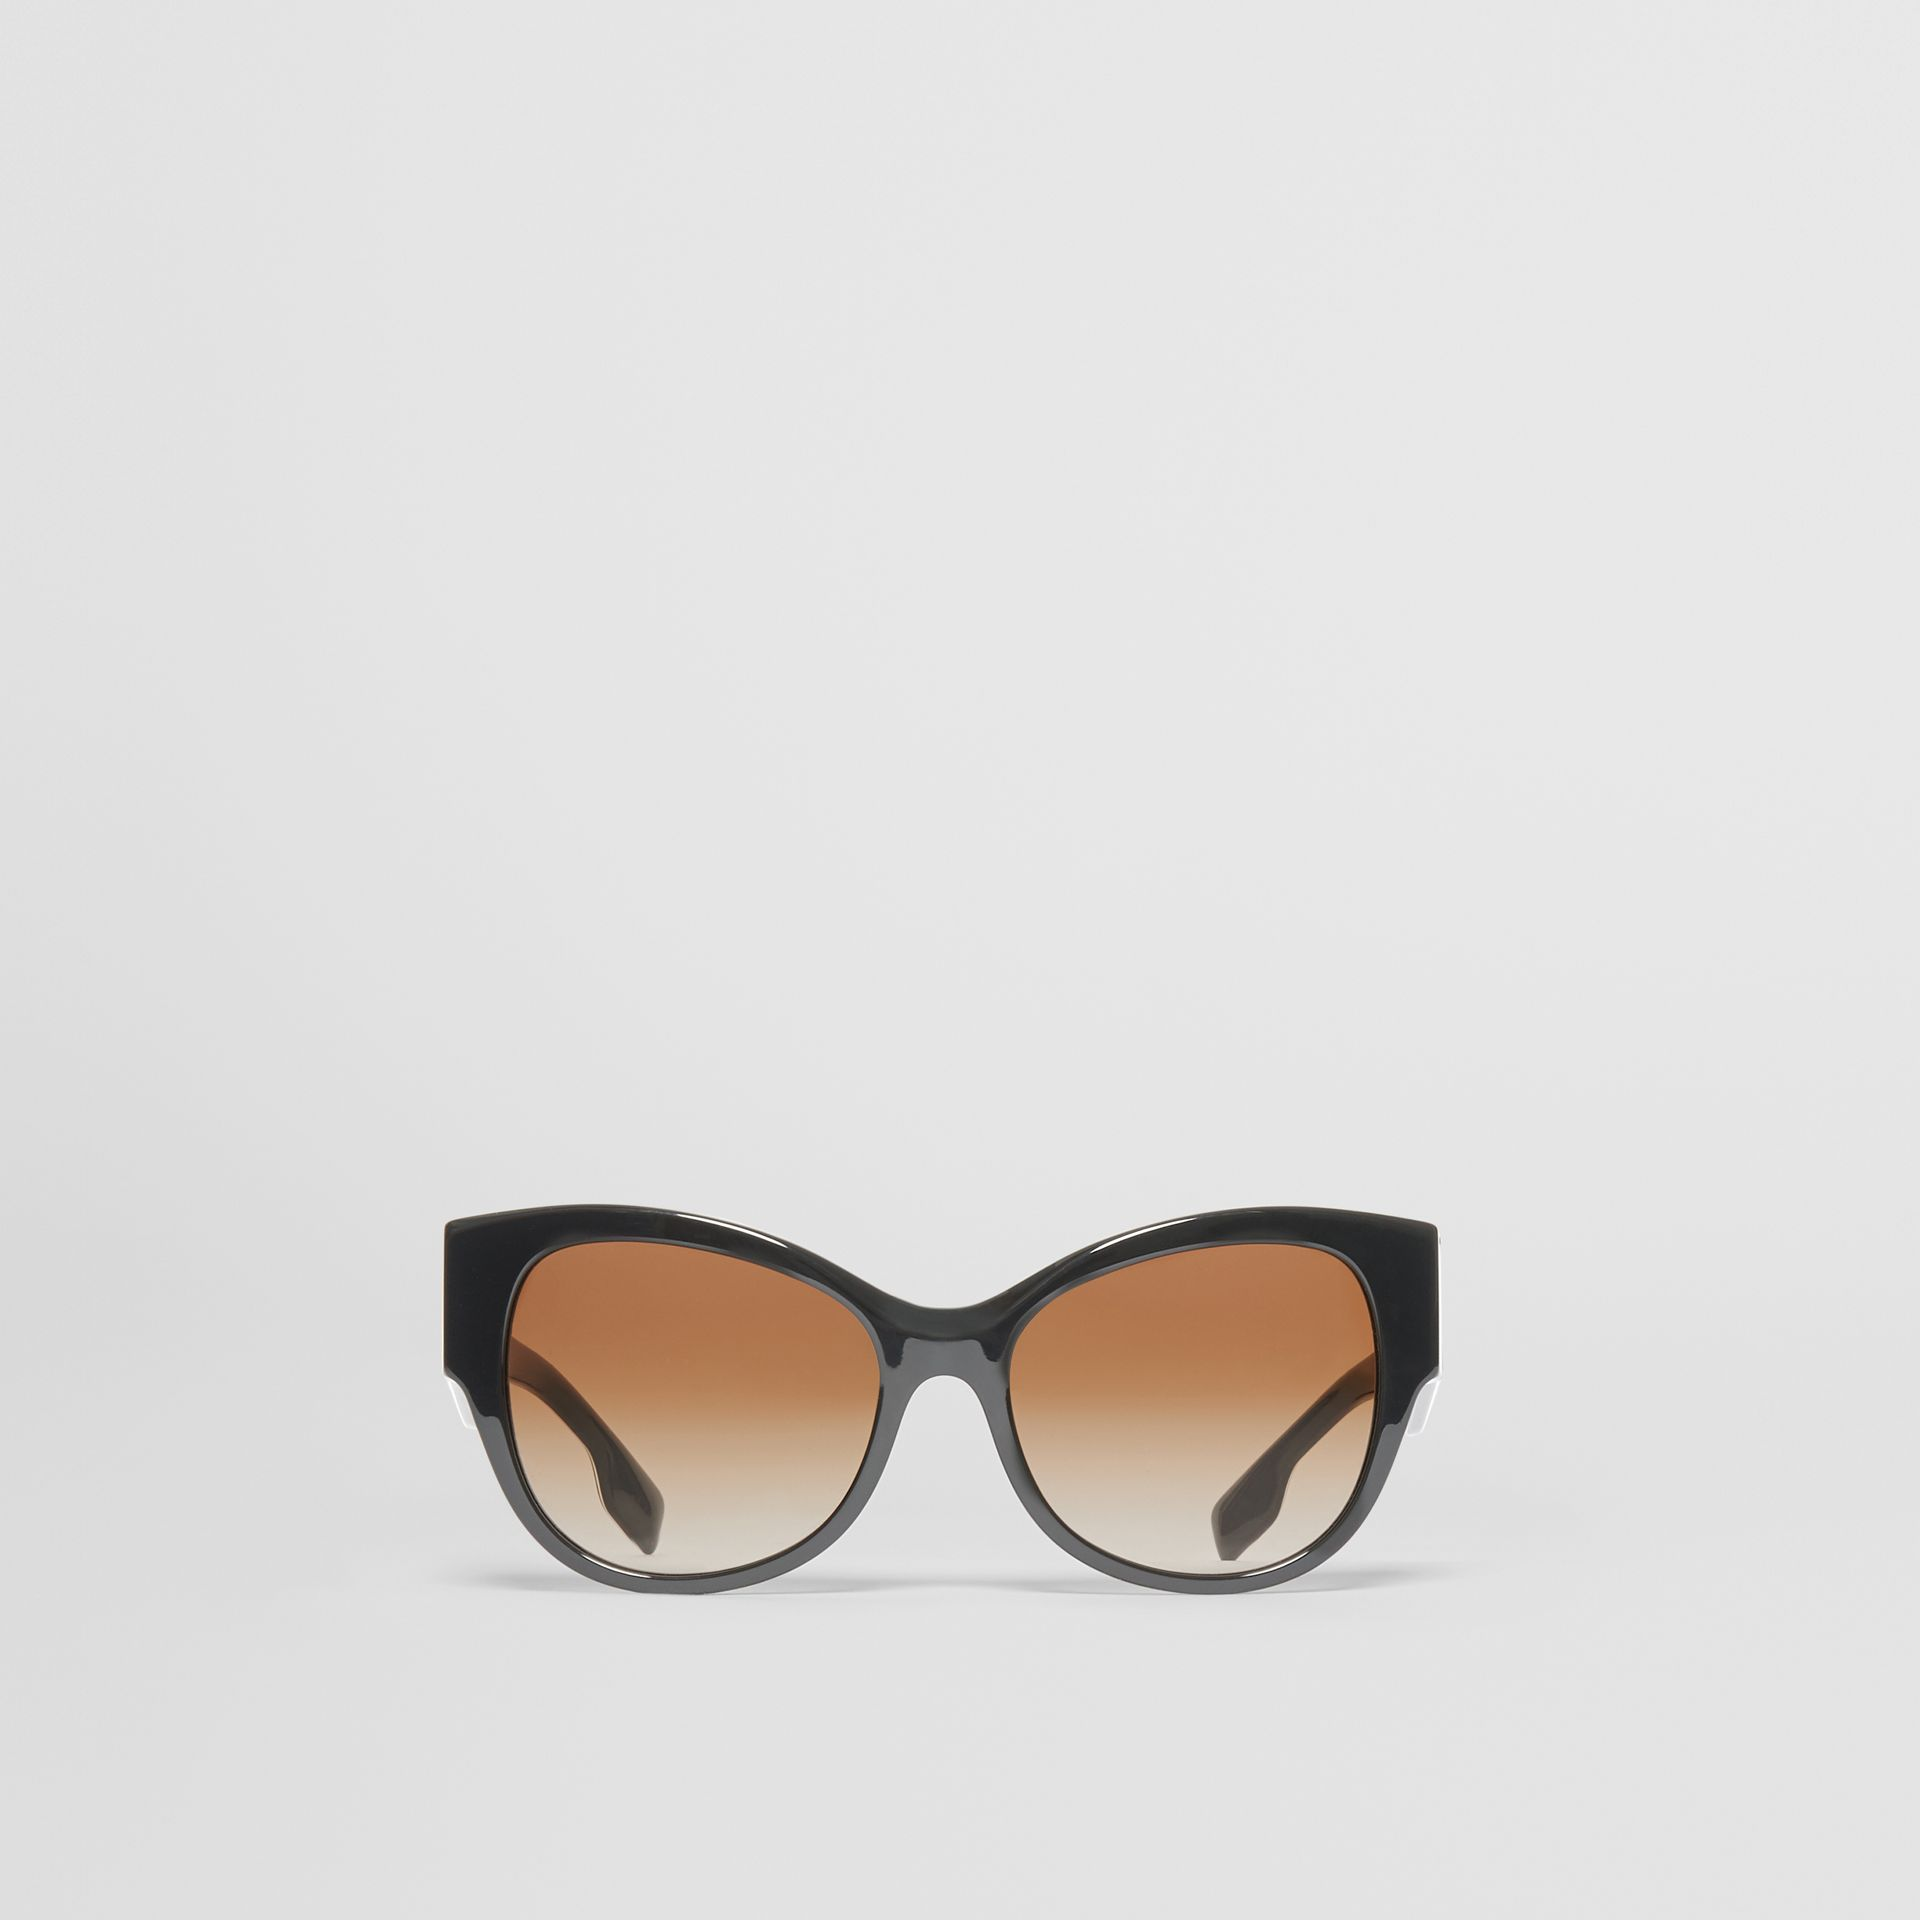 Monogram Detail Butterfly Frame Sunglasses in Black/beige - Women | Burberry United Kingdom - gallery image 0